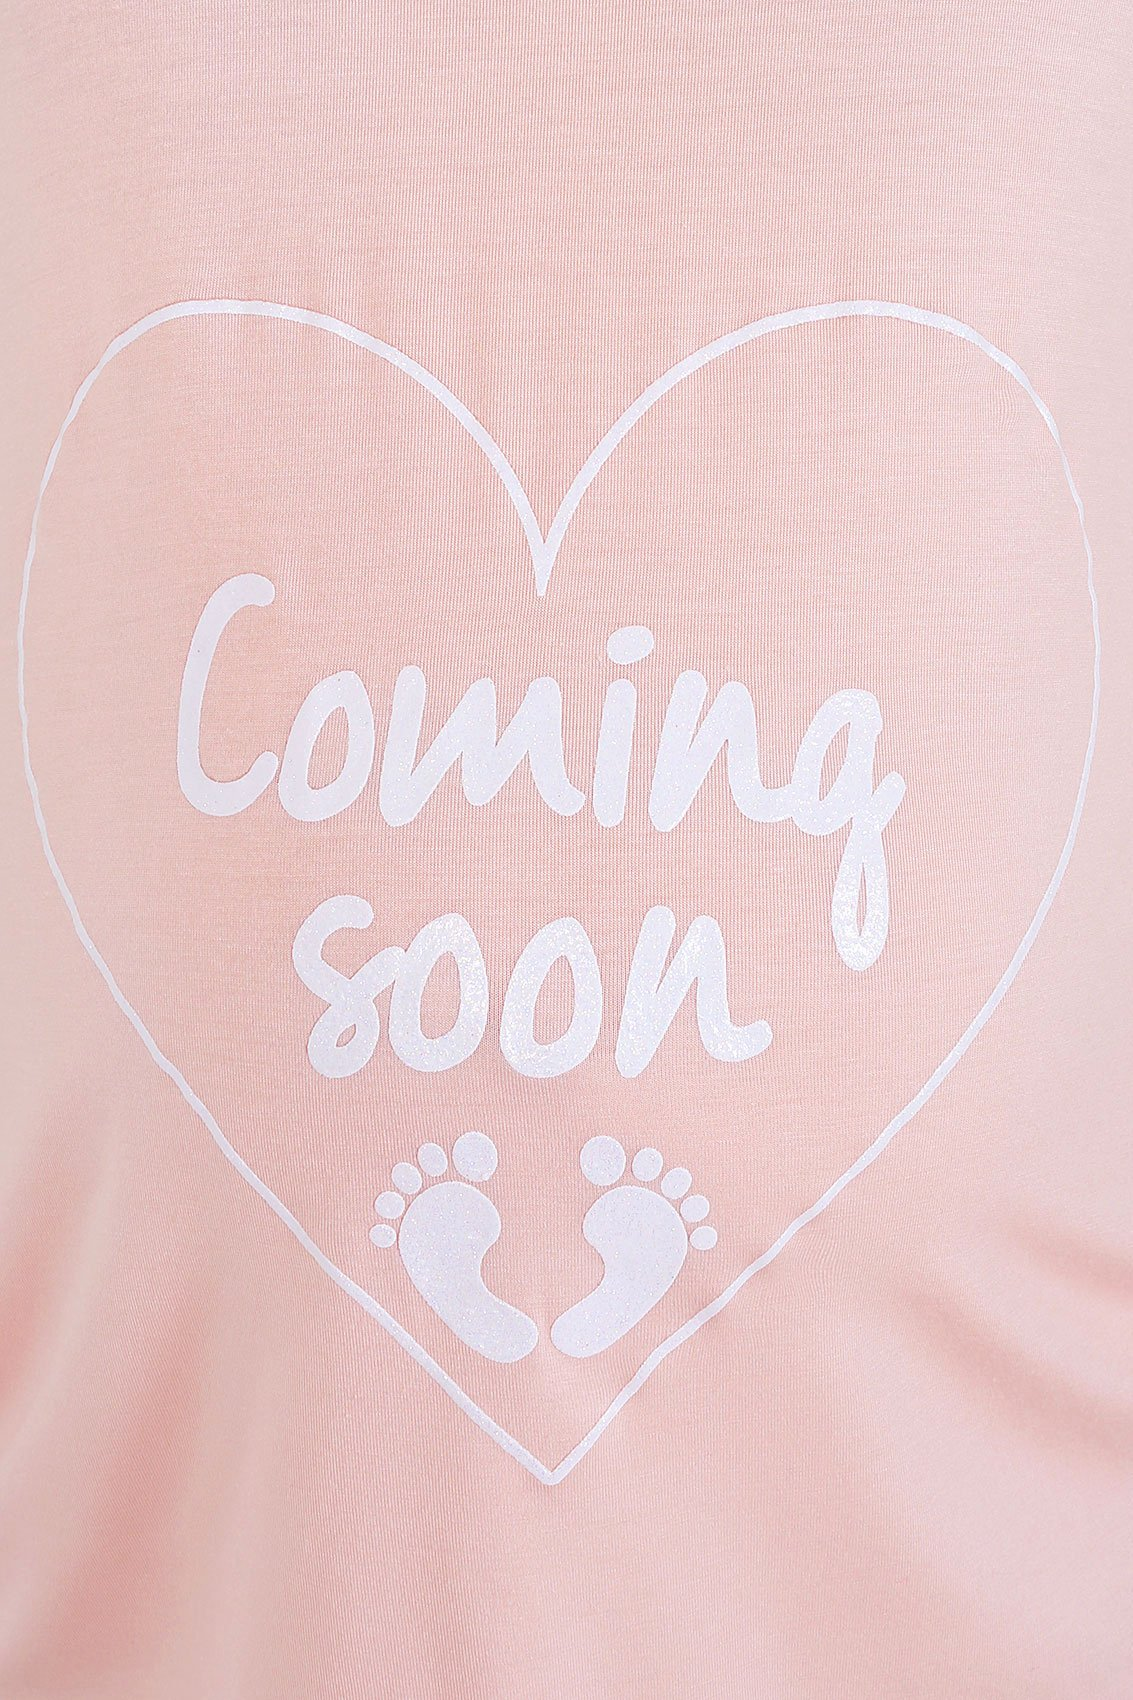 Store Hours Sign Template Inspirational Bump It Up Maternity Pink Ing soon top Size 16 to 32